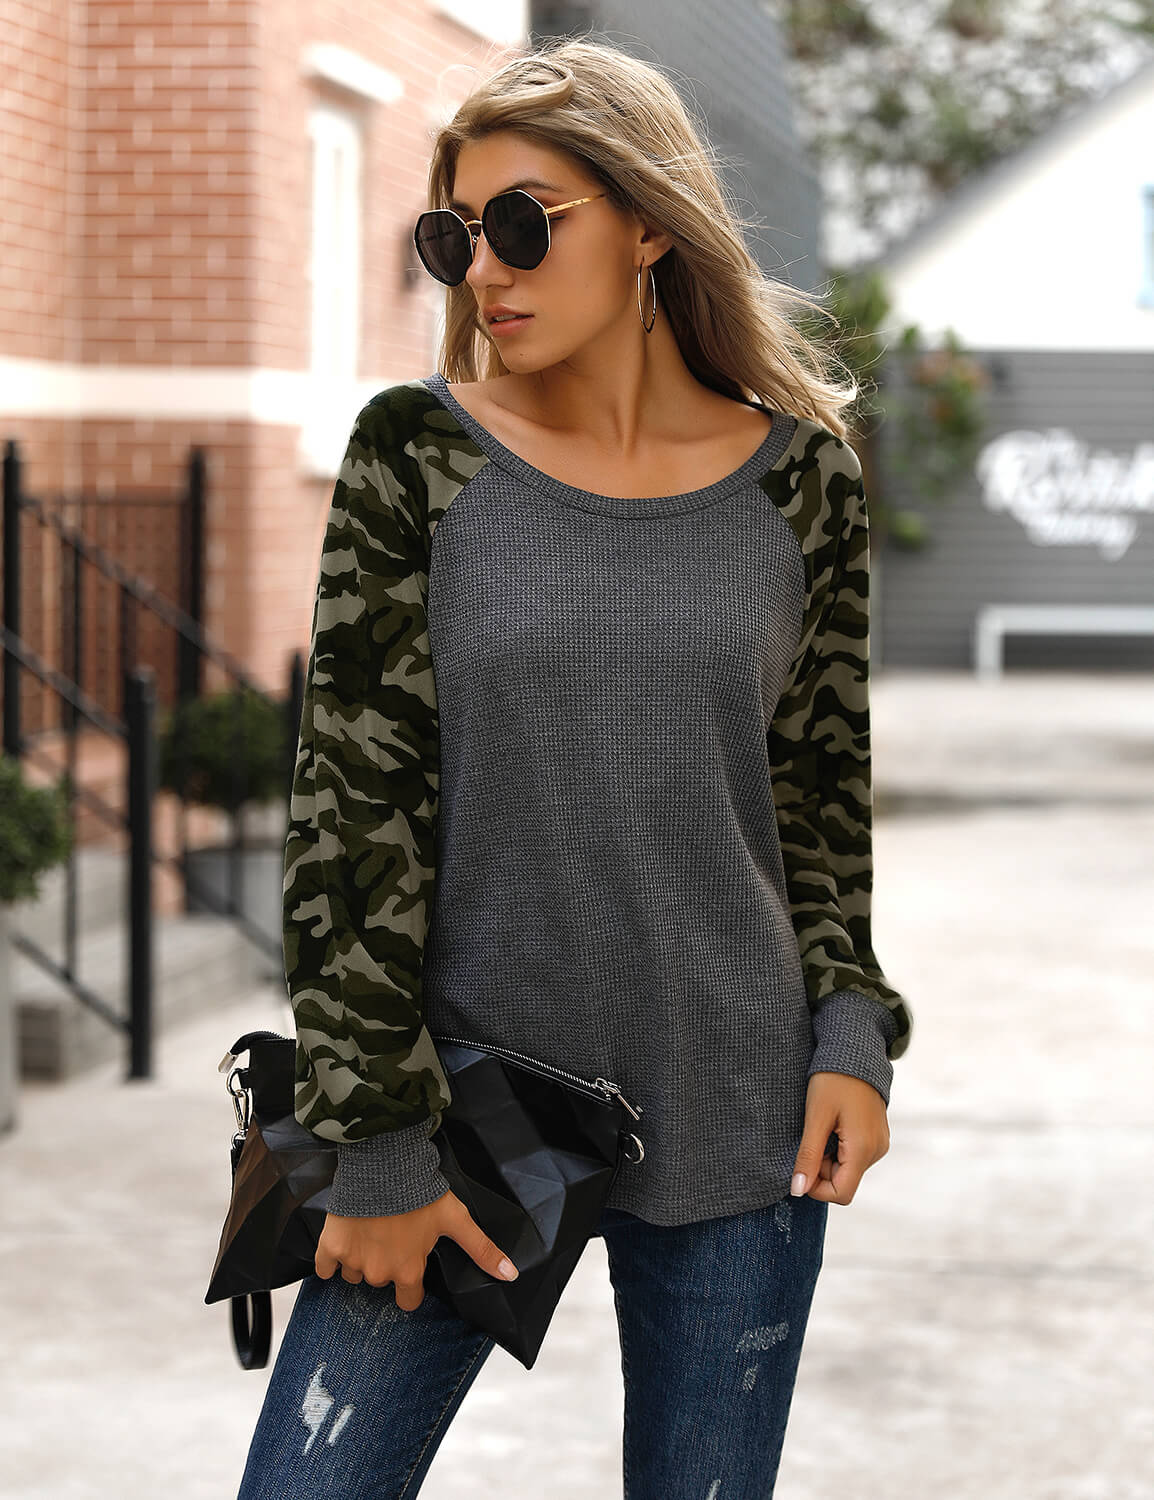 Blooming Jelly_Street Style Camo Long Sleeve T-Shirt_Camo Print_152709_07_2020 Women Fashion Outfits_Tops_T-Shirt